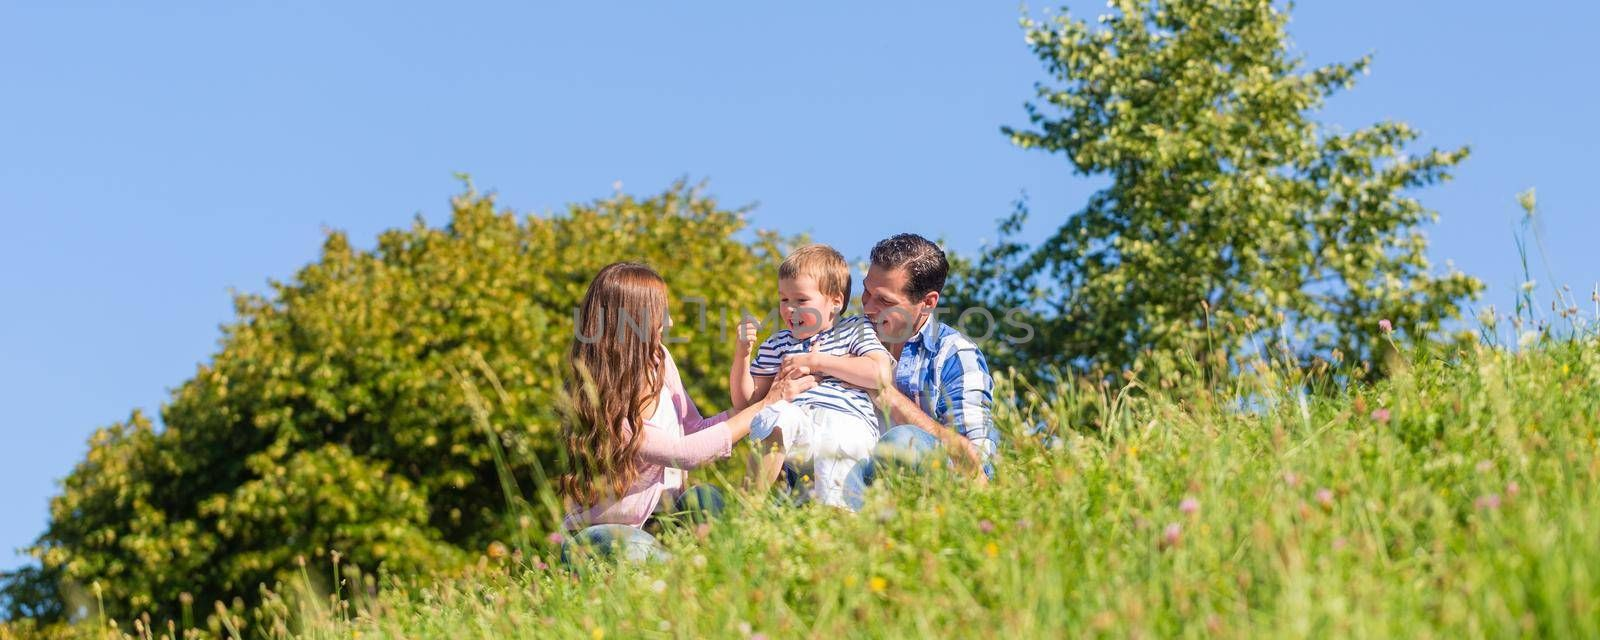 Family in grass on meadow